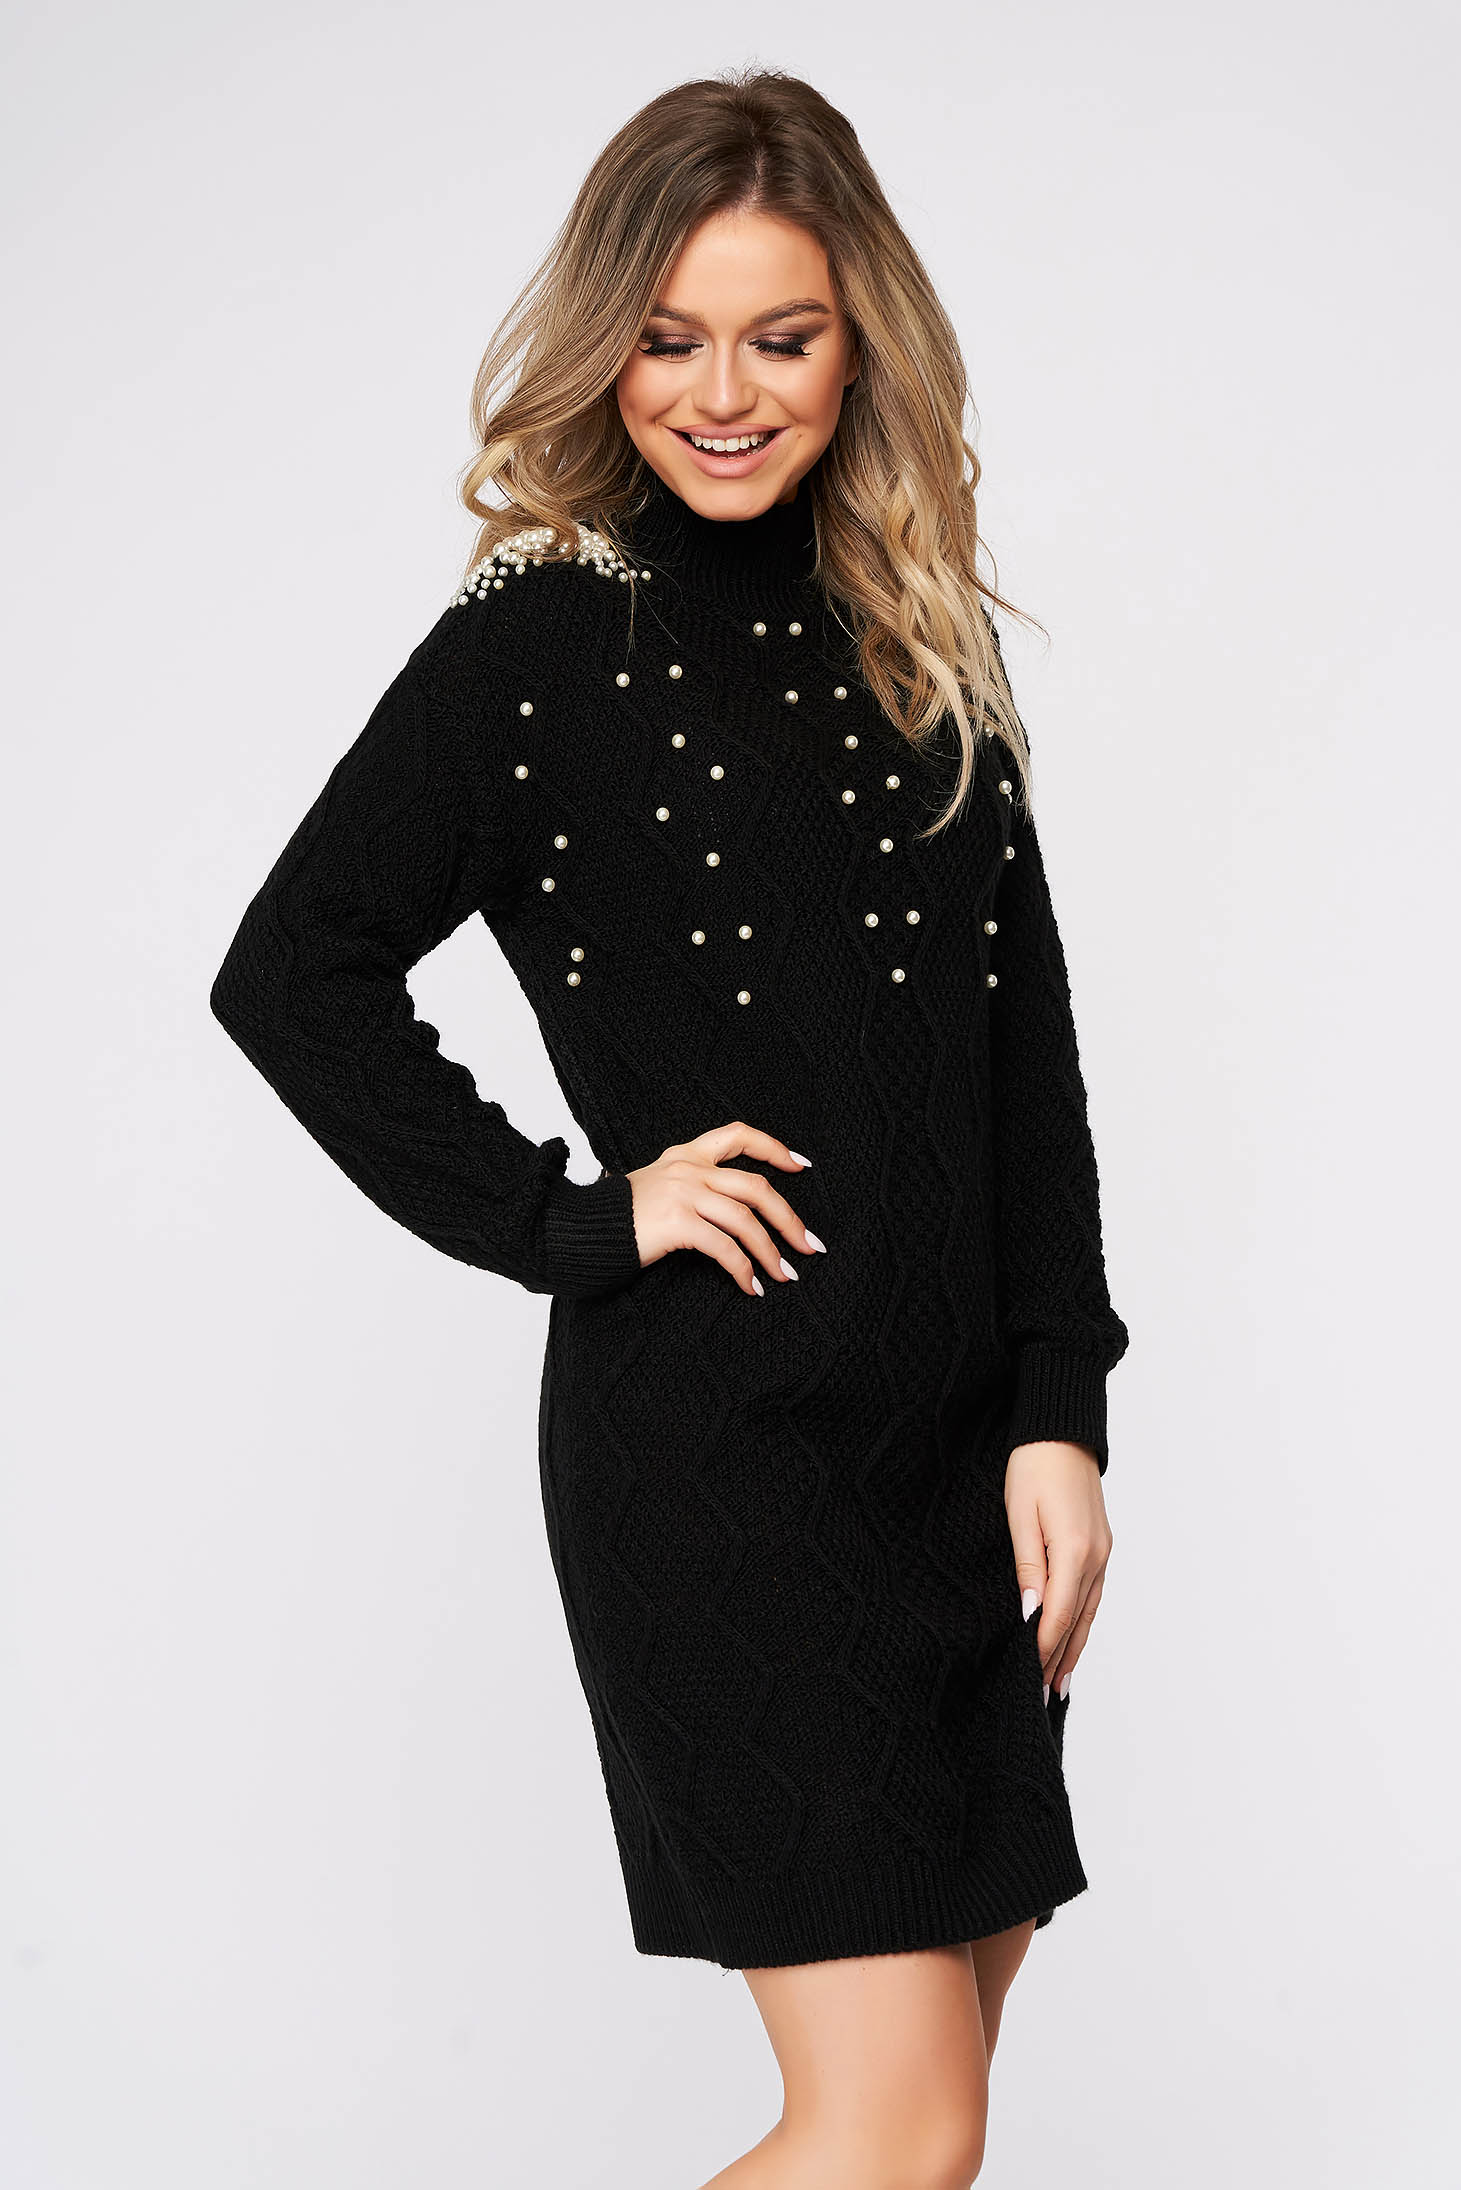 Black sweater casual knitted fabric with pearls